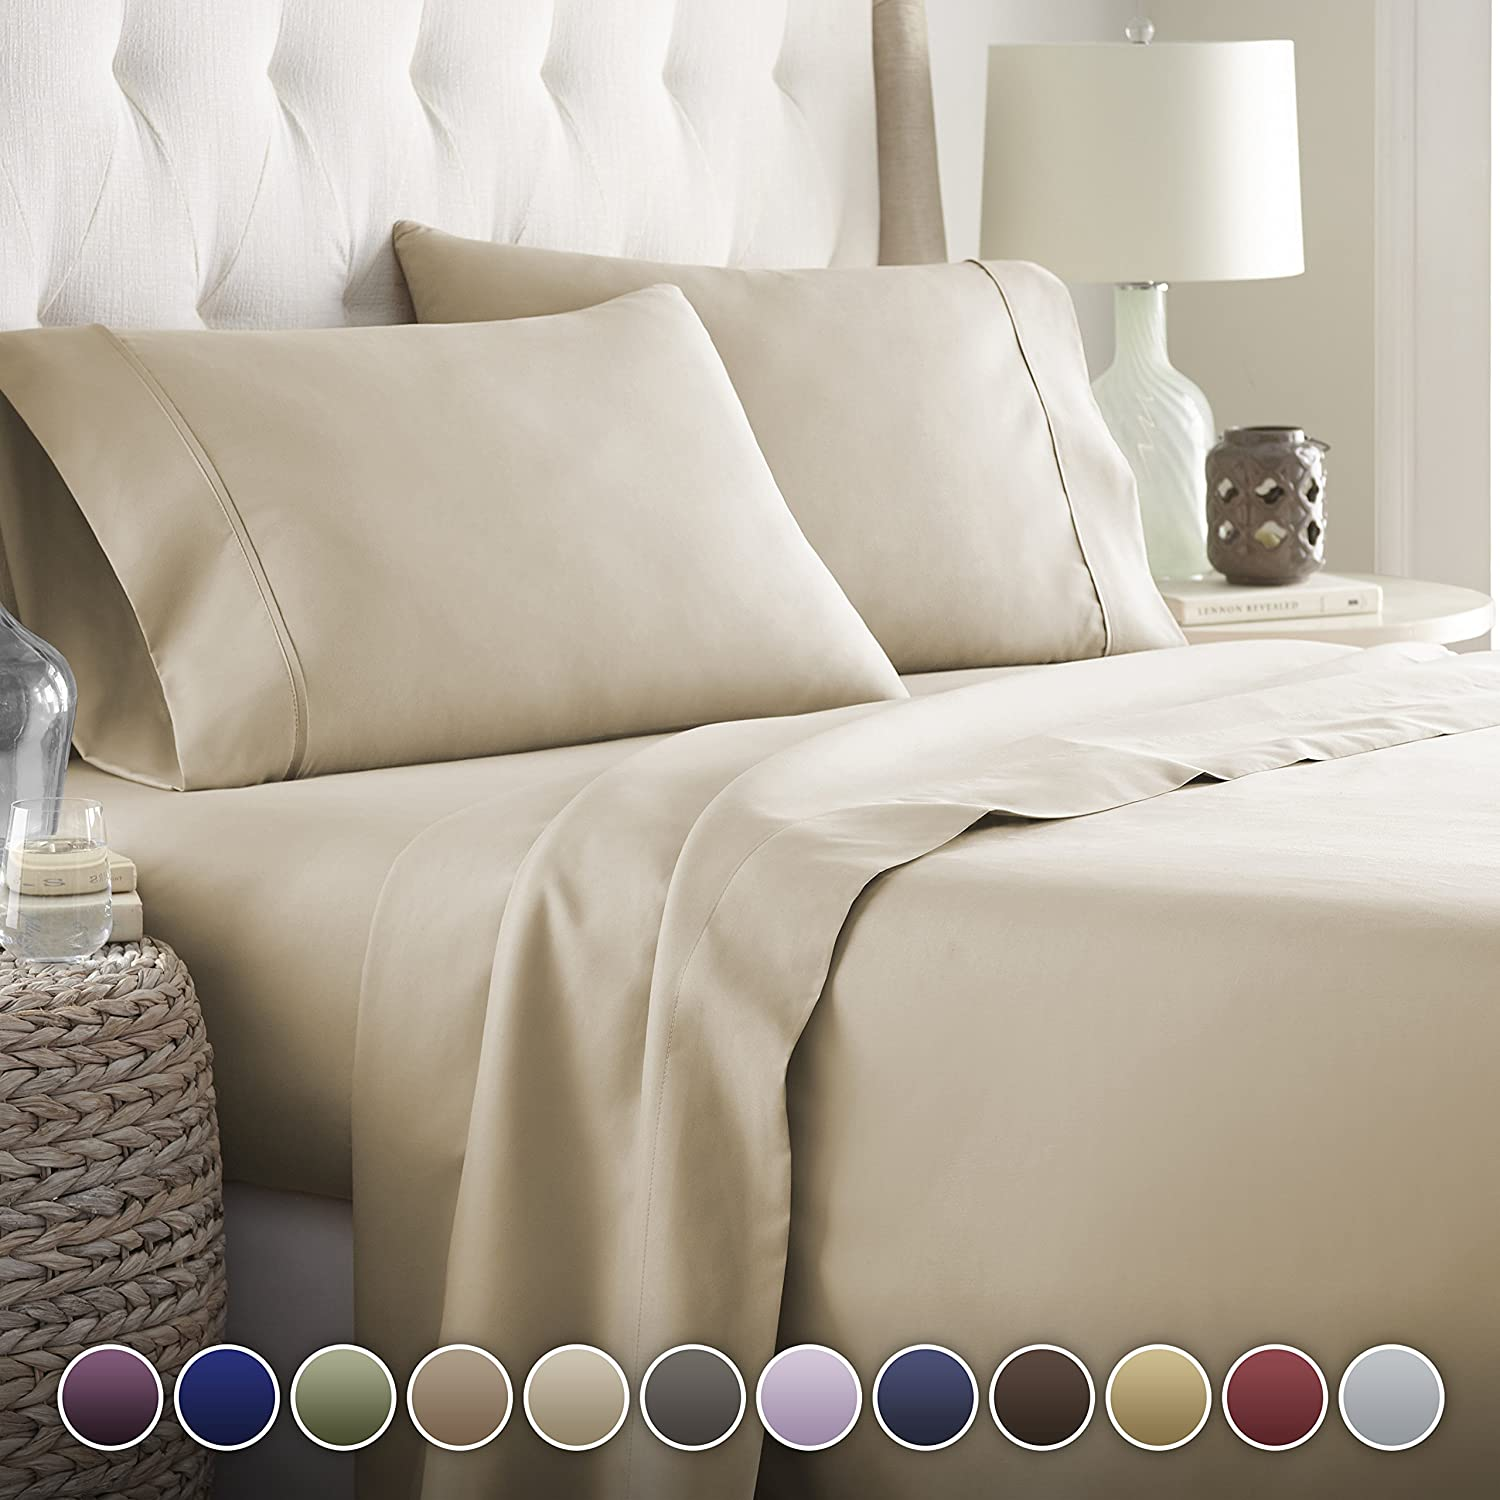 Hotel Luxury Bed Sheets Set- 1800 Series Platinum Collection-Deep Pocket,Wrinkle & Fade Resistant (King,Taupe)